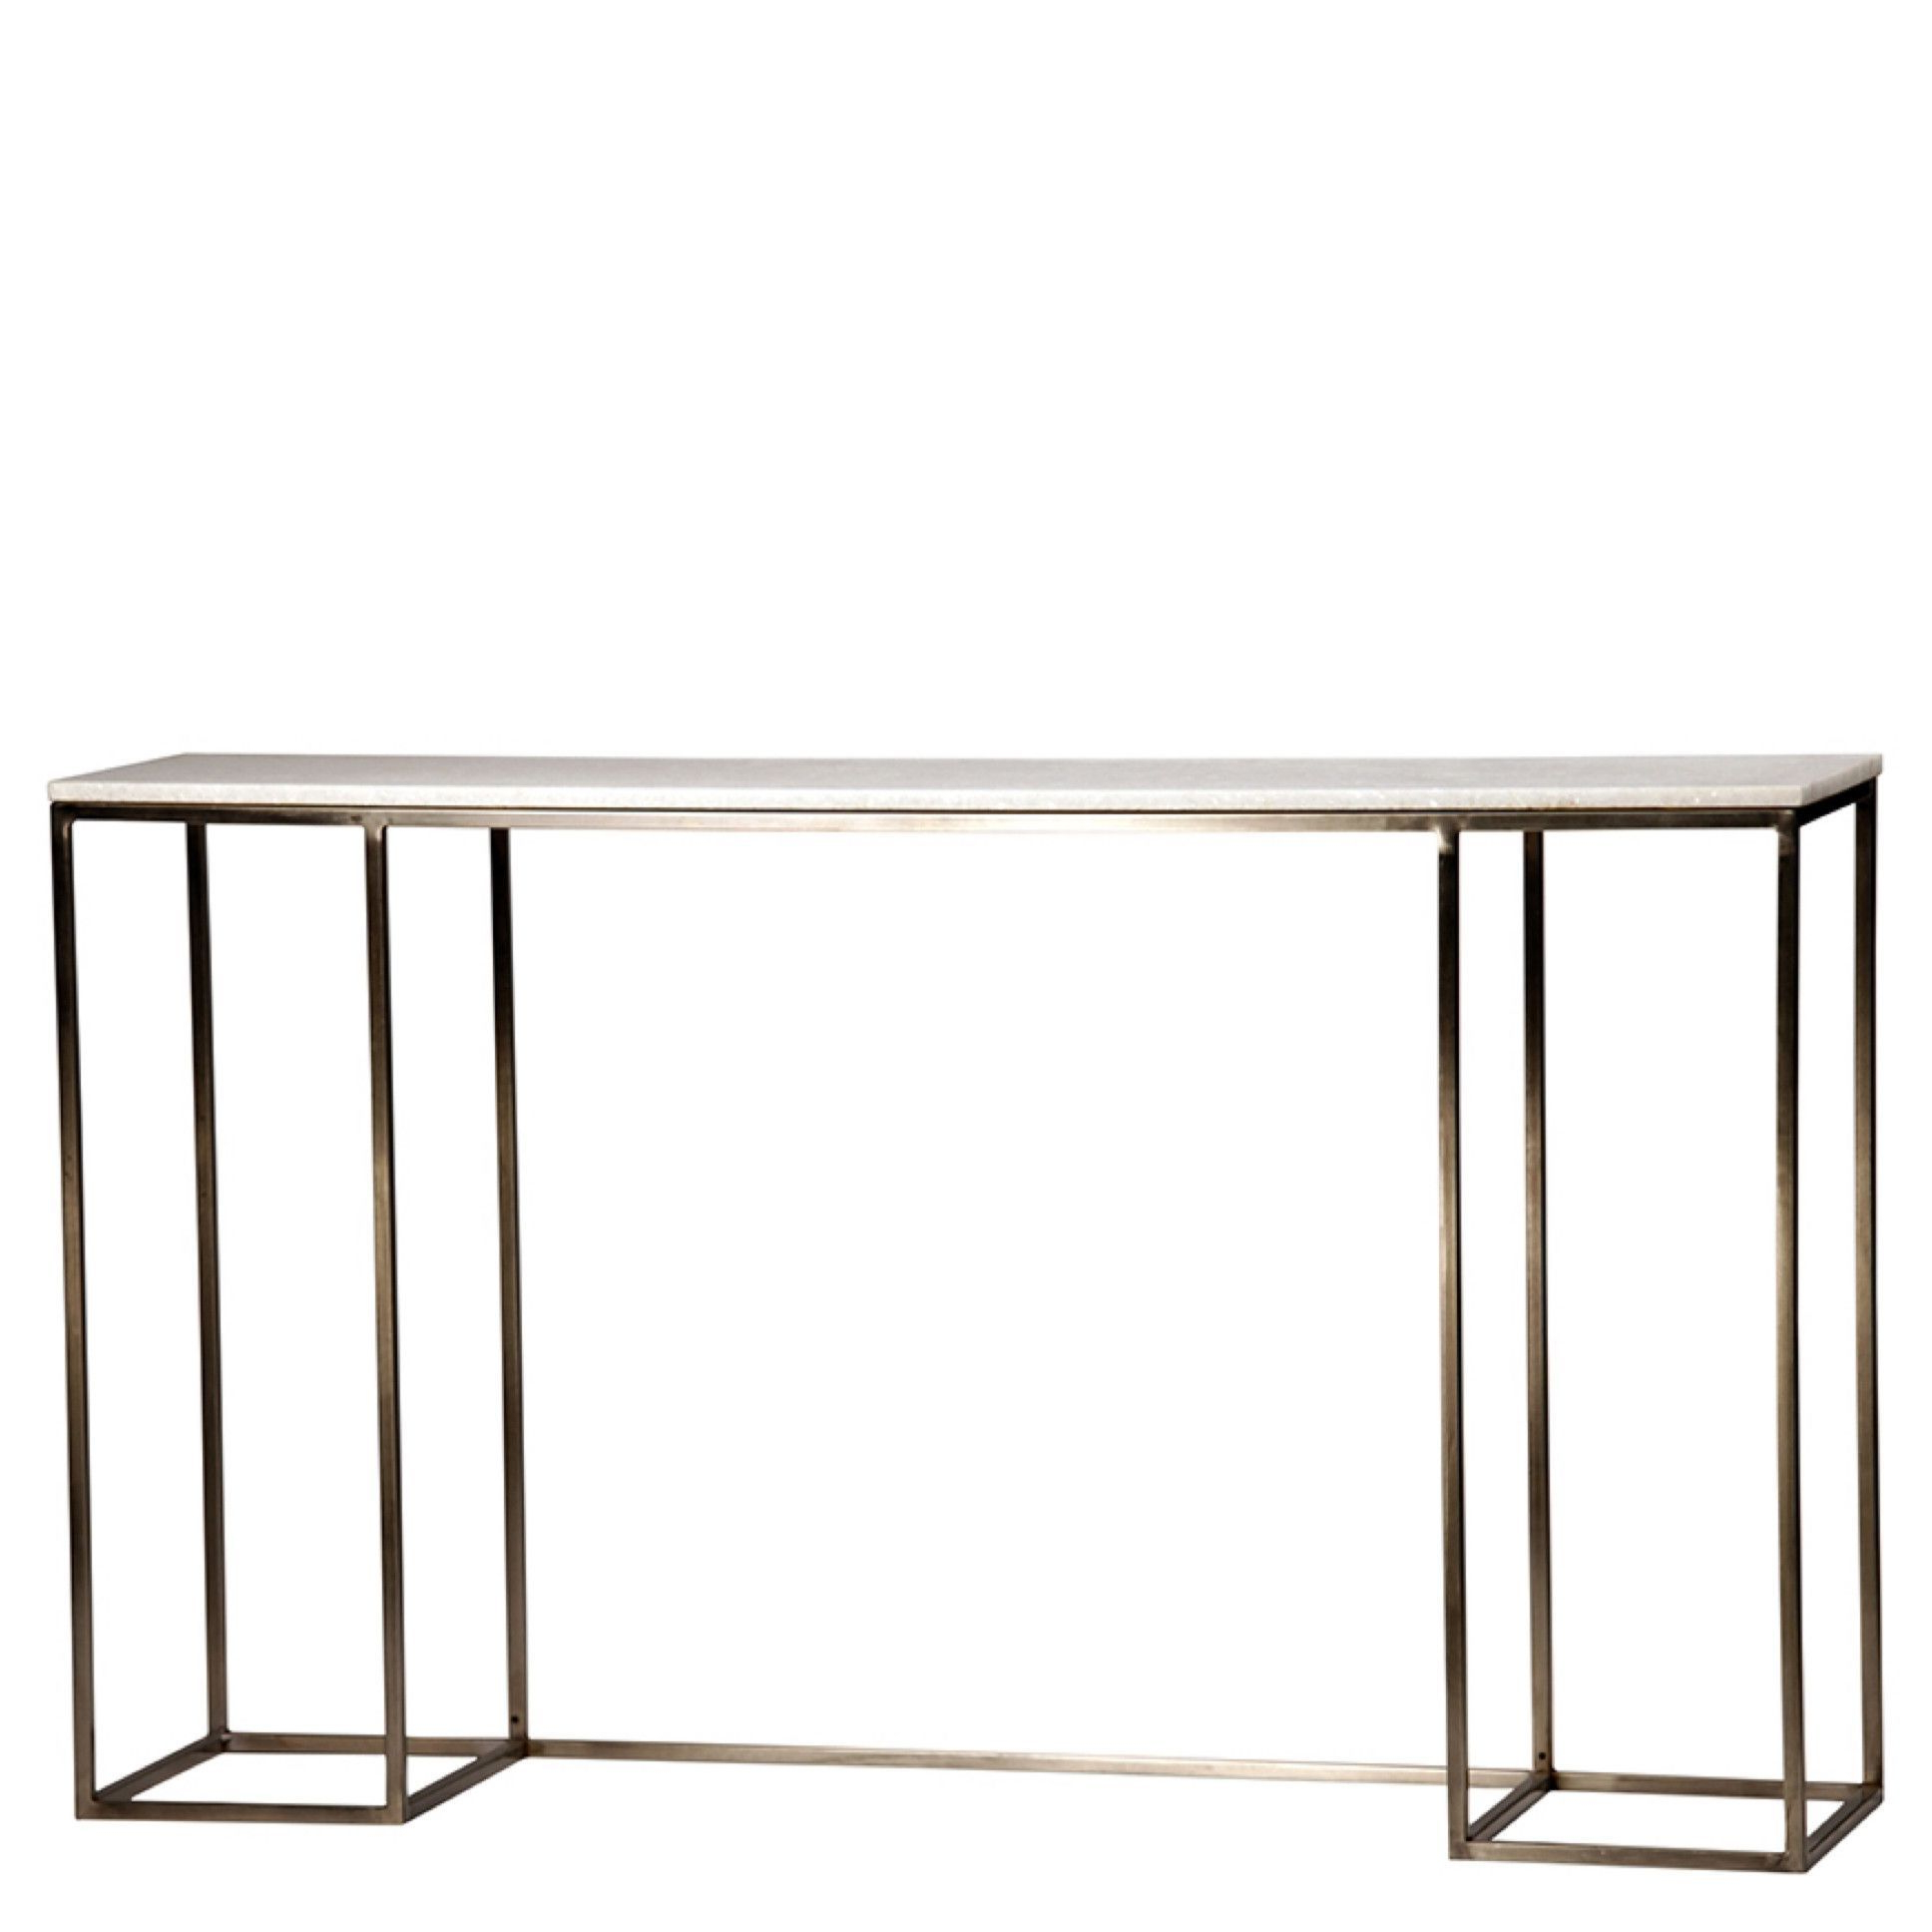 Sydney Console Table | Products | Pinterest | Console Table, Table Inside Silviano 60 Inch Iron Console Tables (View 20 of 20)